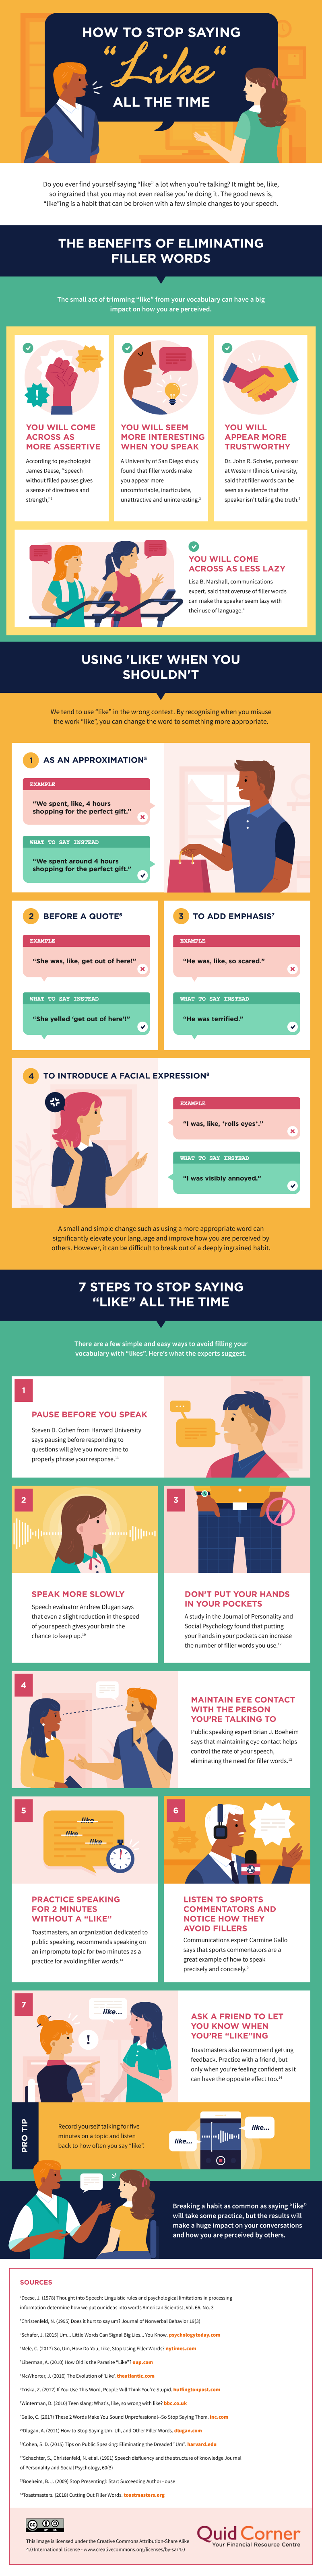 "7 Ways to Erase ""Like"" From Your Work Vocabulary, This infographic will help you learn what words you can use instead of like"